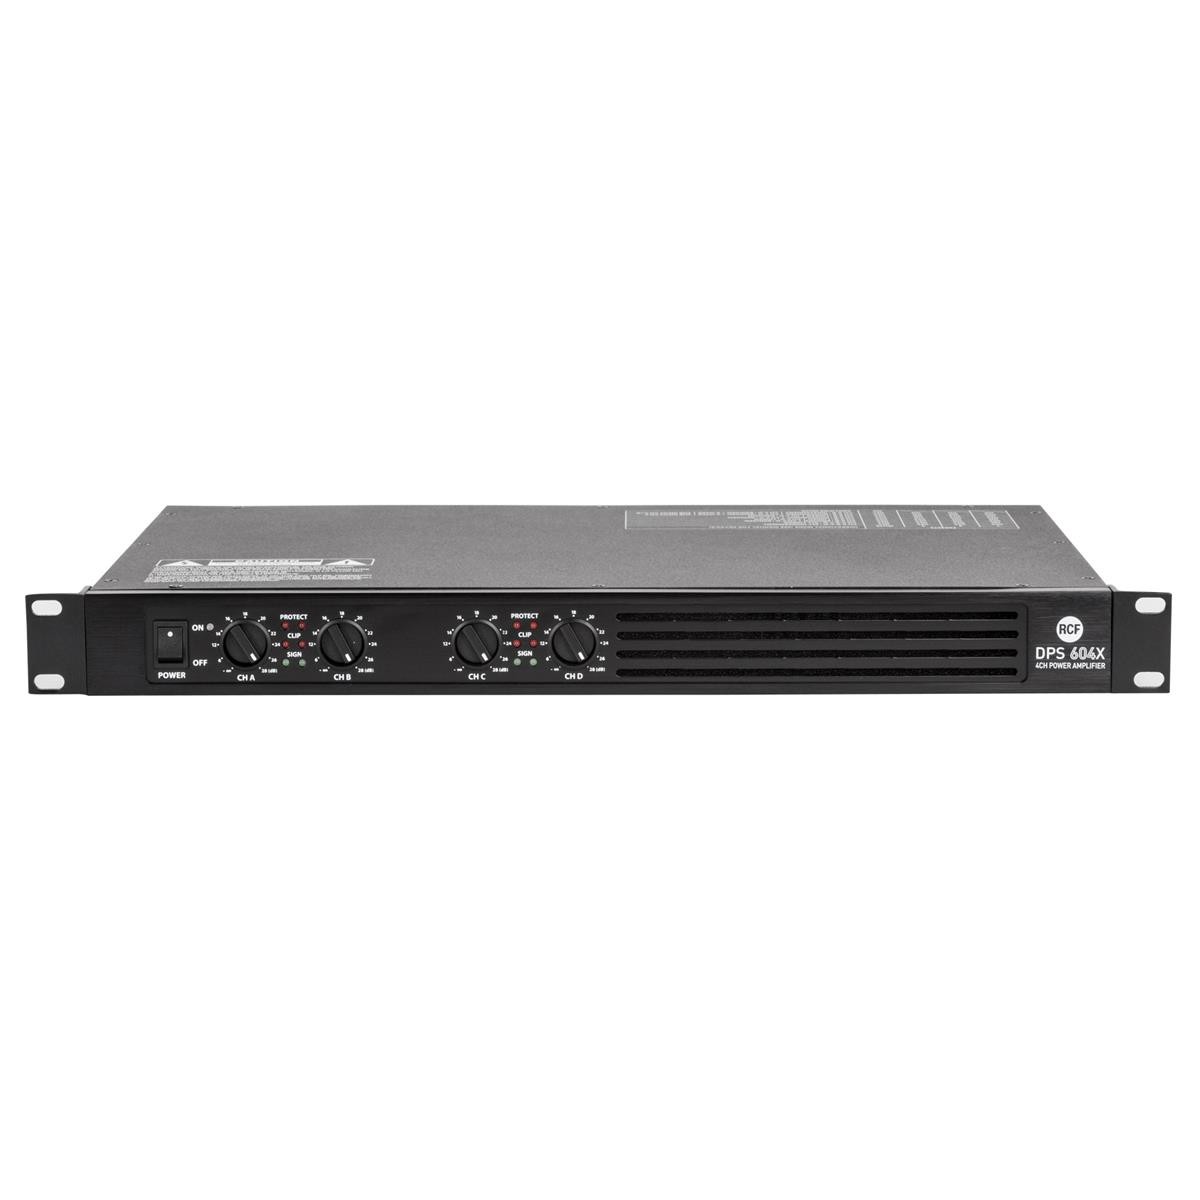 RCF DPS 604X Class D pro power amplifier 4x150 W RMS @ 4 ohm